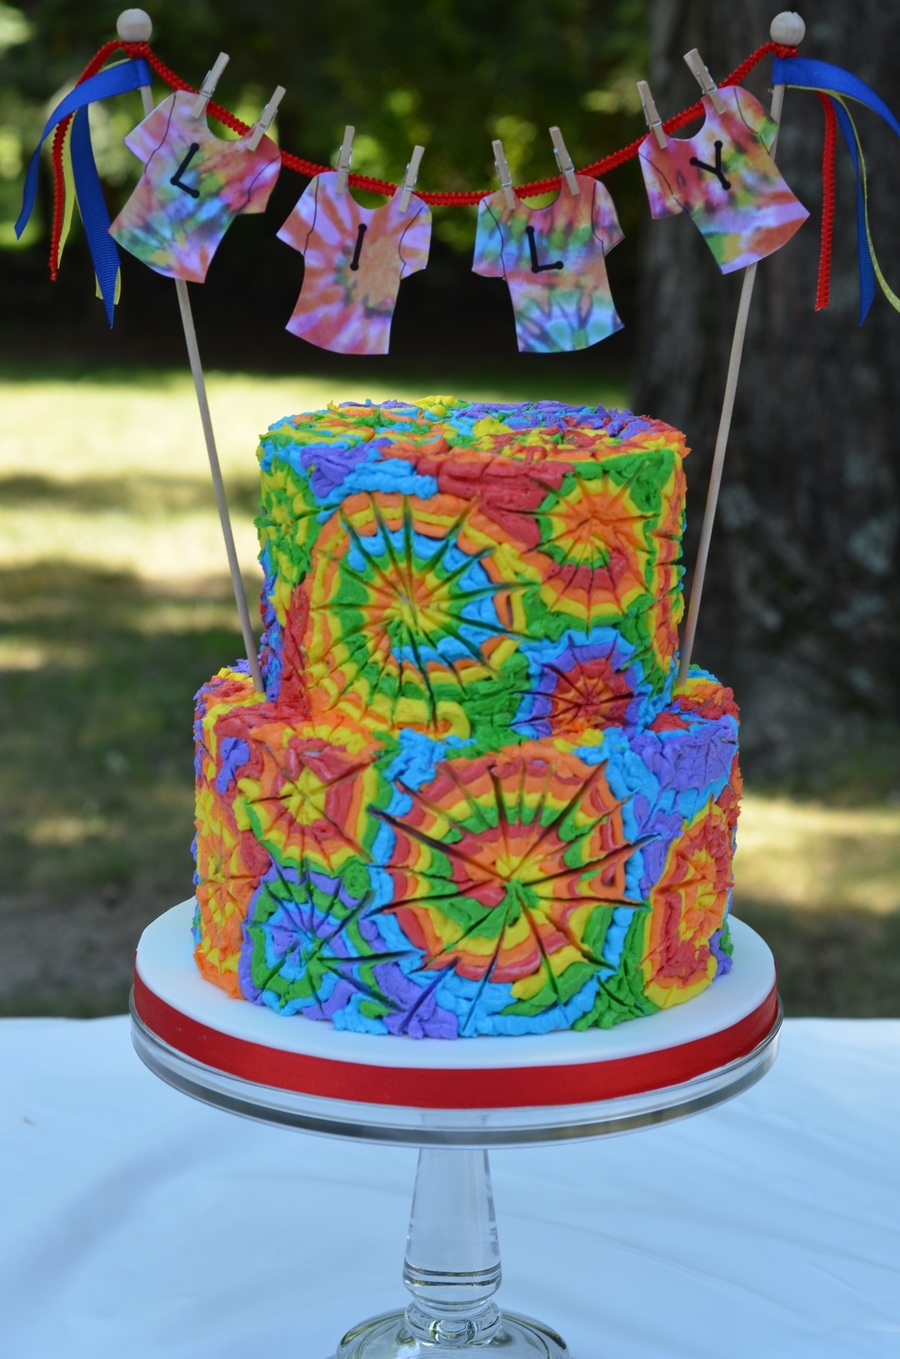 Cake Decorating Birthday Party : I Made This Cake For A Tie Dye Birthday Party The Cake Is ...